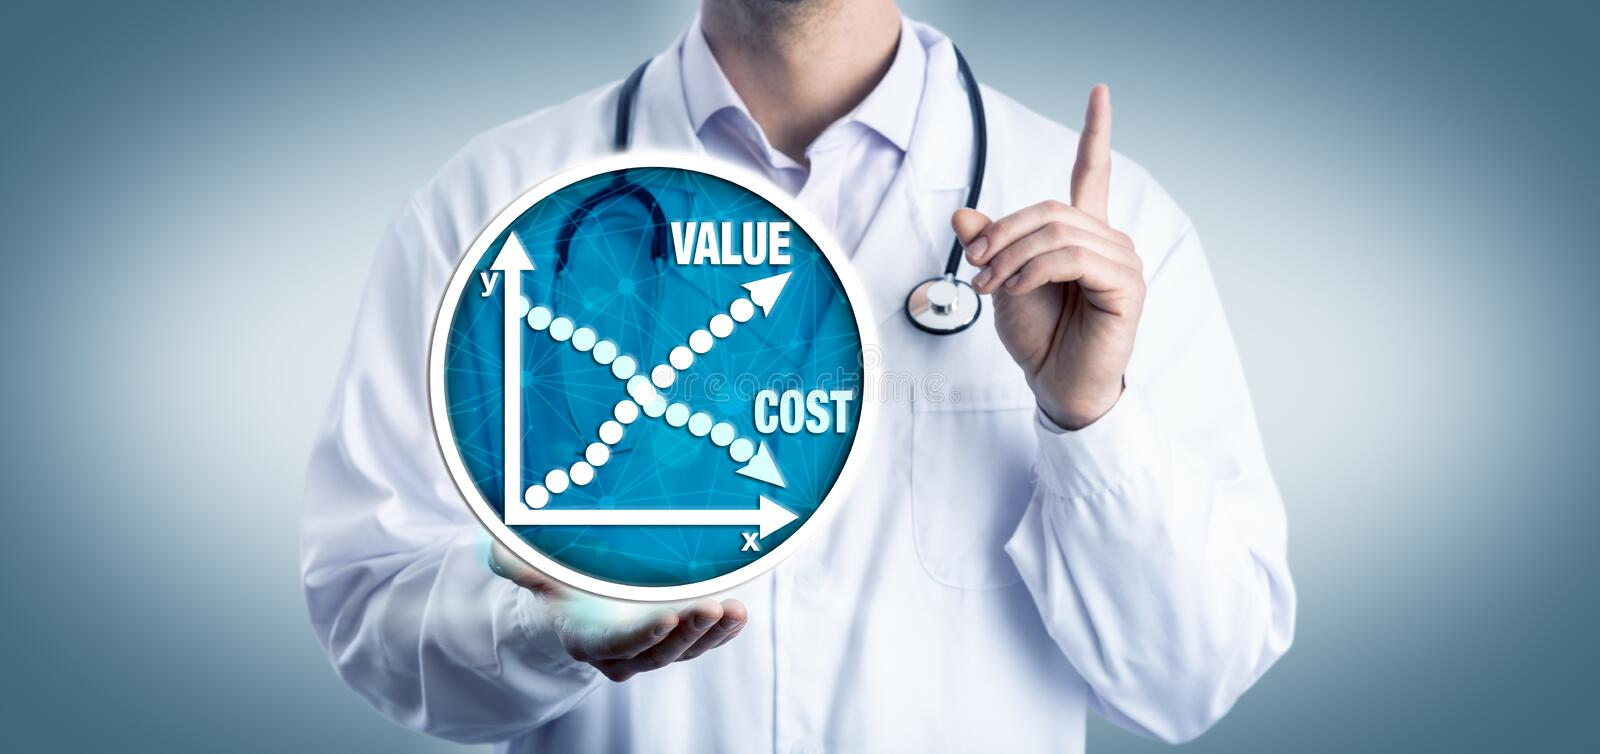 Young Clinician Advising On Cost Versus Value. Young clinician representative advising to consider the cost versus value of medicine. Health care concept for royalty free stock images